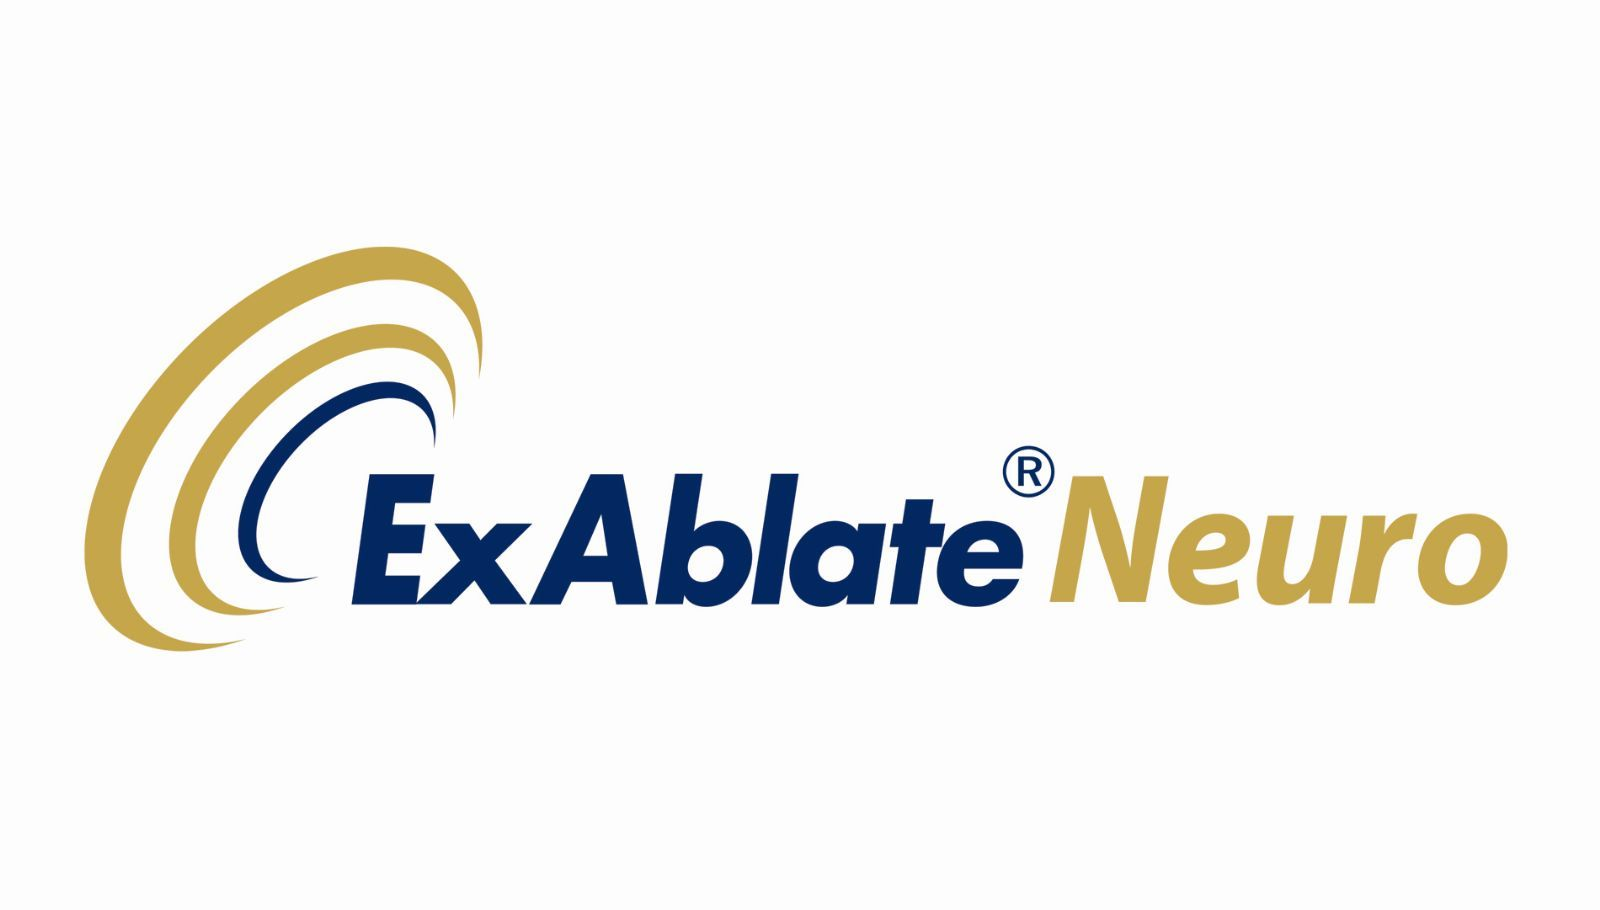 ExAblate Neuro receives the go-ahead from FDA to begin its pivotal Phase III trial for Essential Tremor